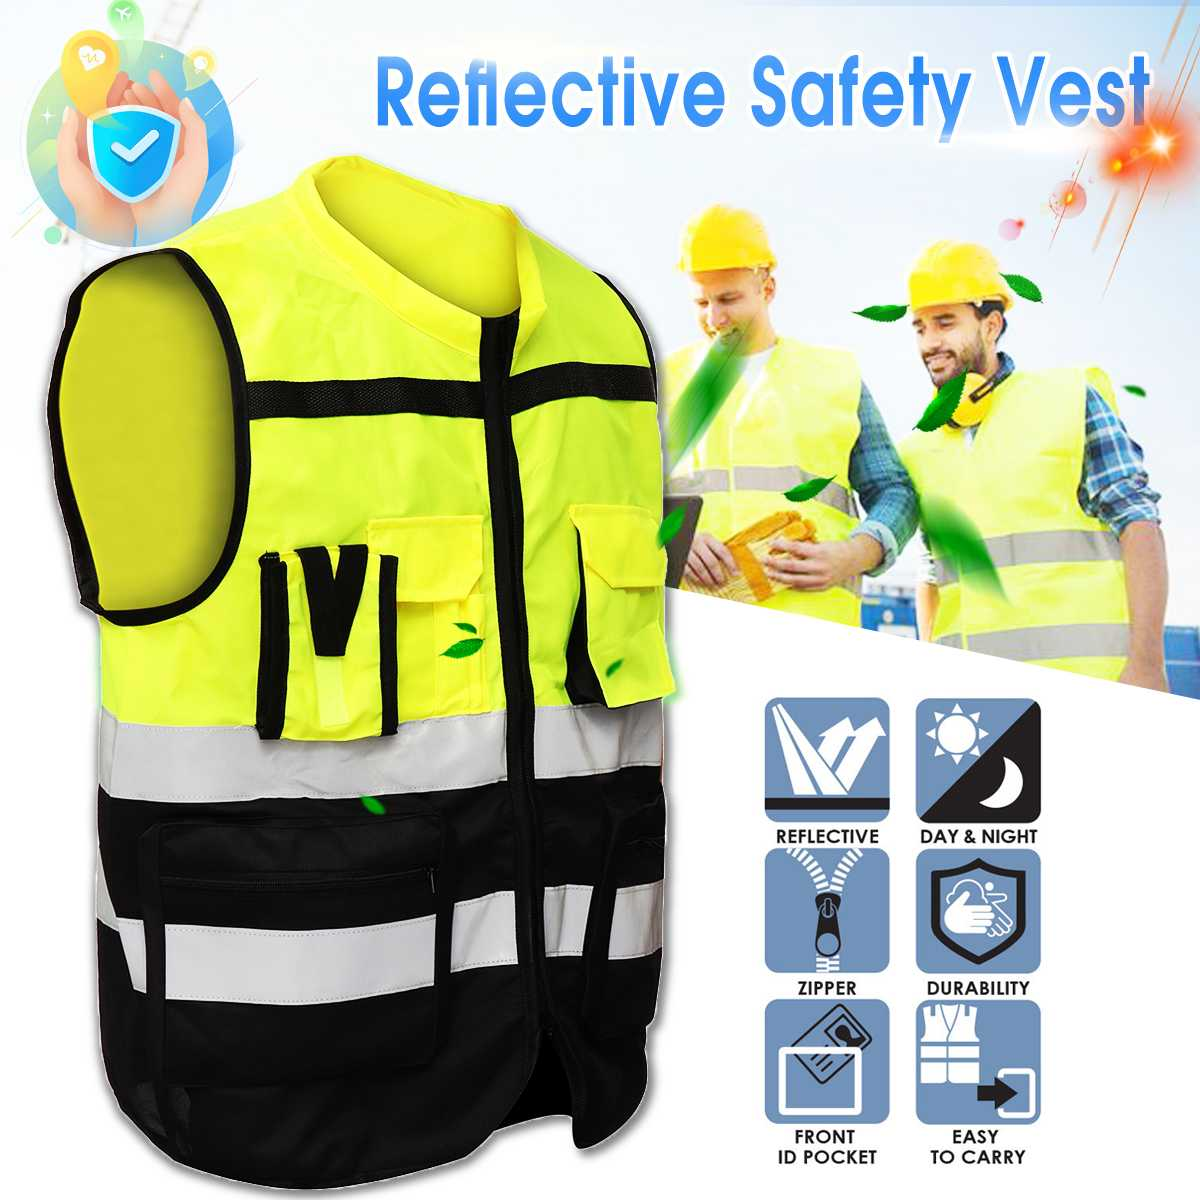 SECURITY Hi Vis Vest Waistcoat Safety Reflective Jacket High Visibility Black Yellow